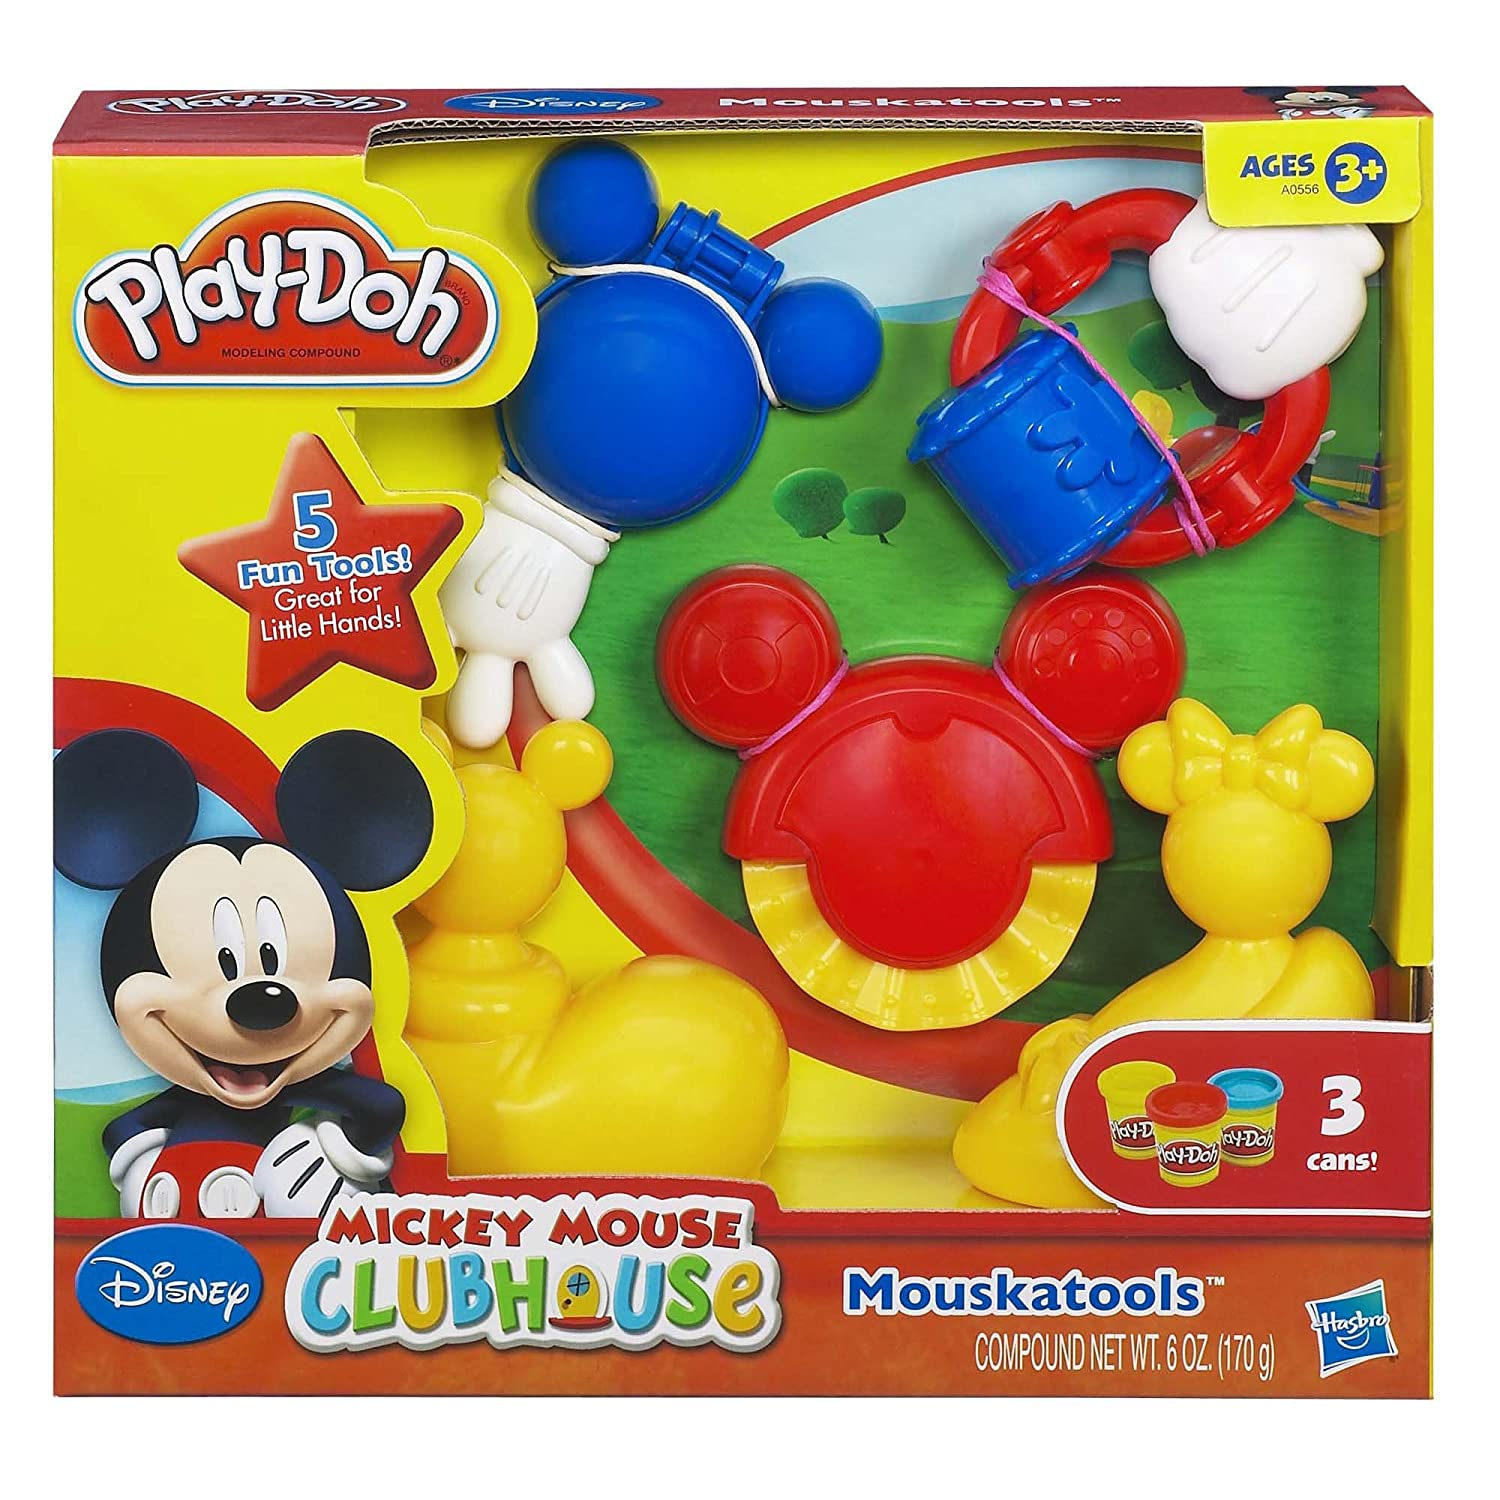 Amazon Play Doh Mickey Mouse Clubhouse Disney Mouskatools Set